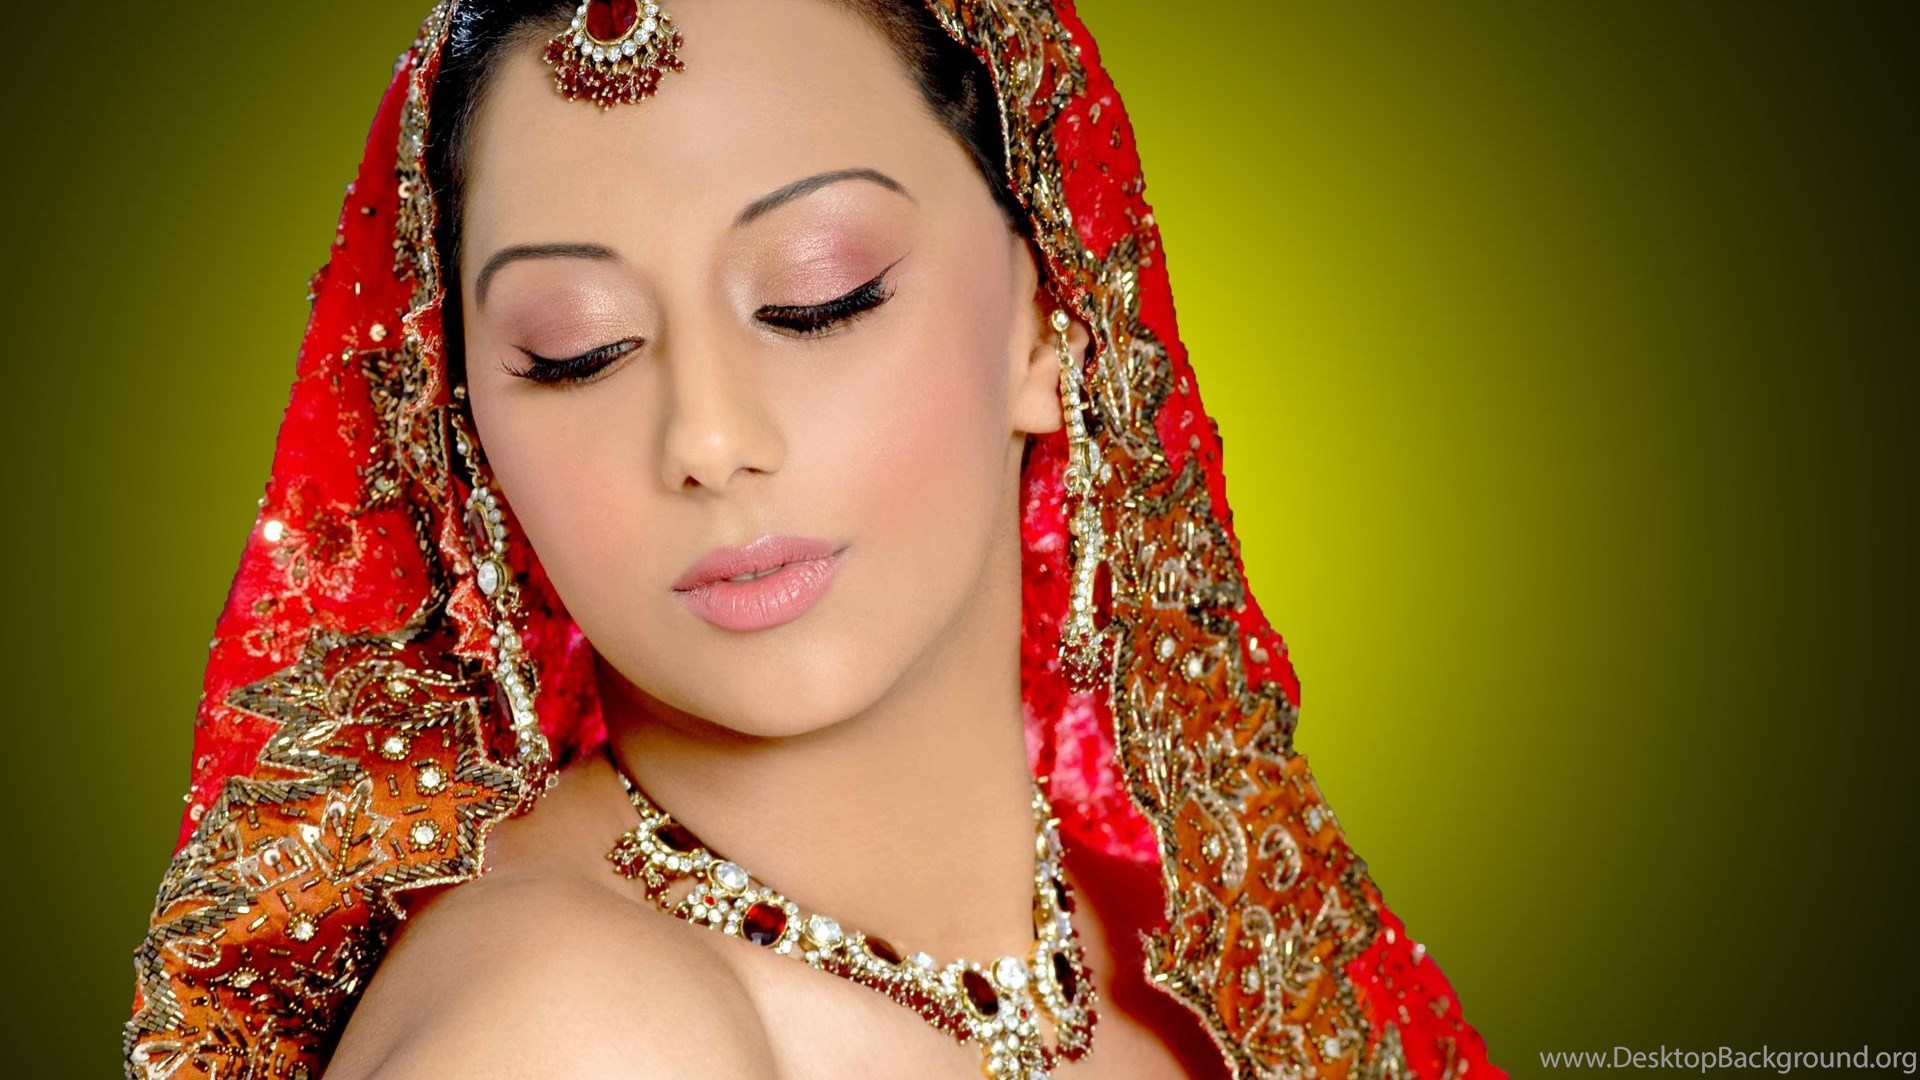 Bride Beauty Indian Girl Wallpapers Desktop Background